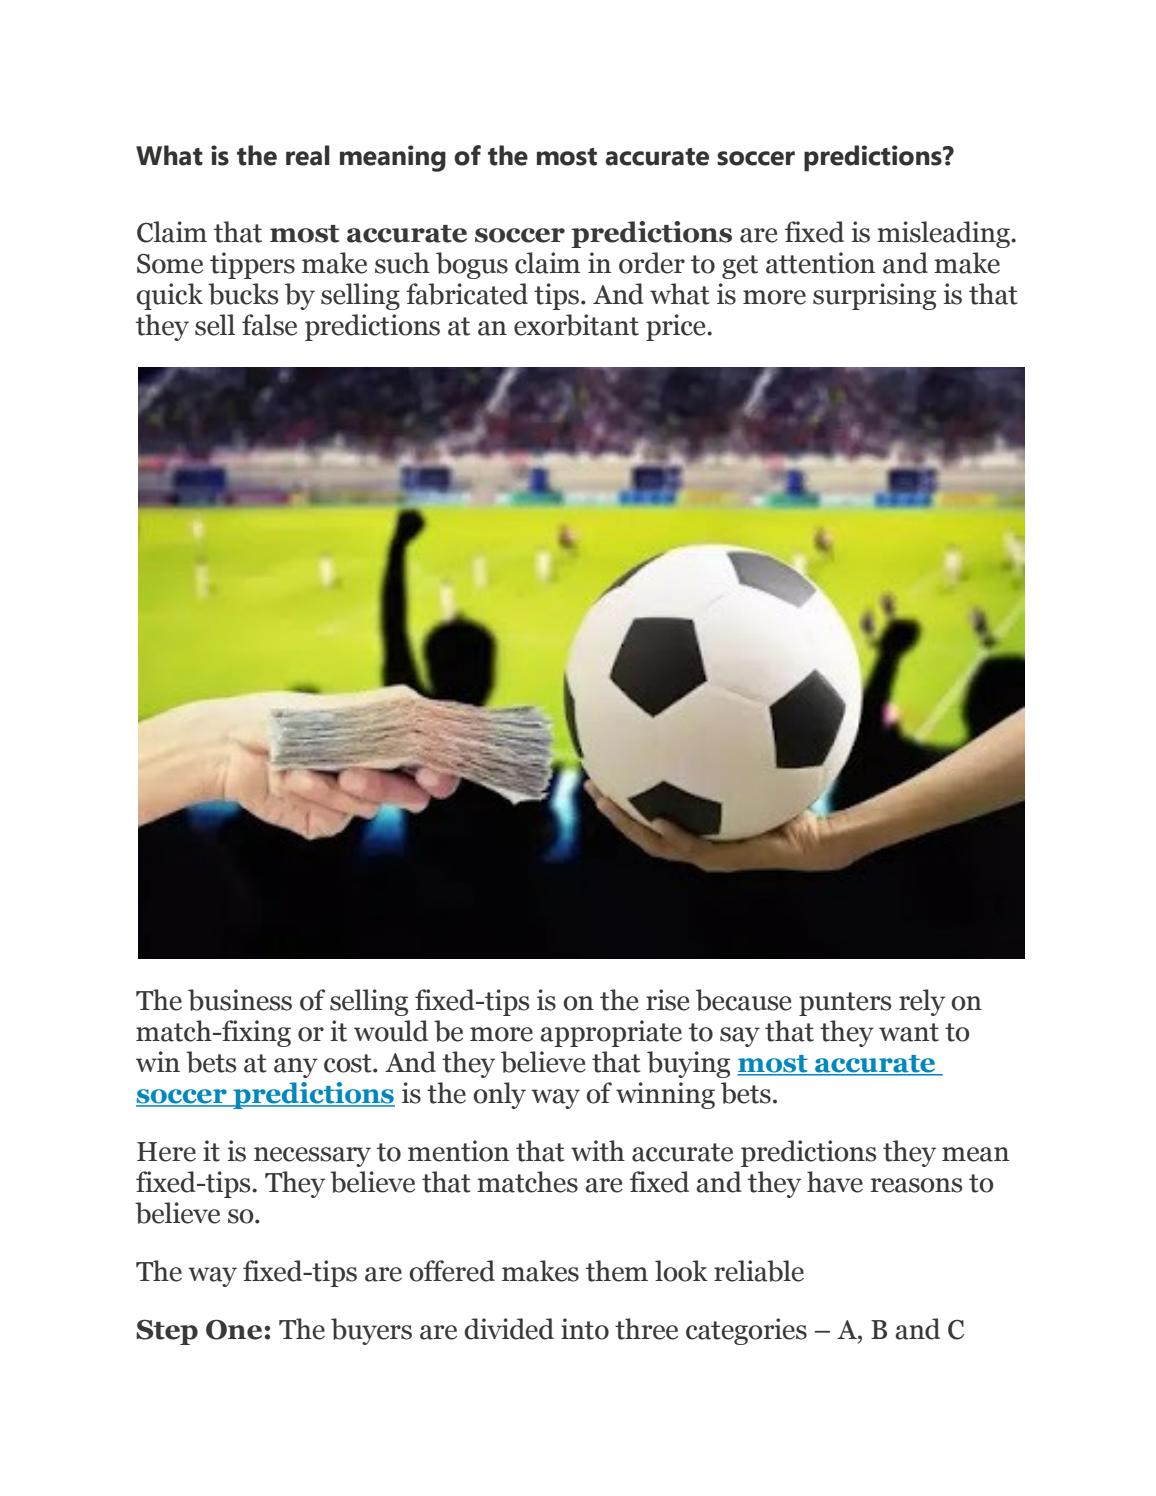 What is the real meaning of the most accurate soccer predictions by